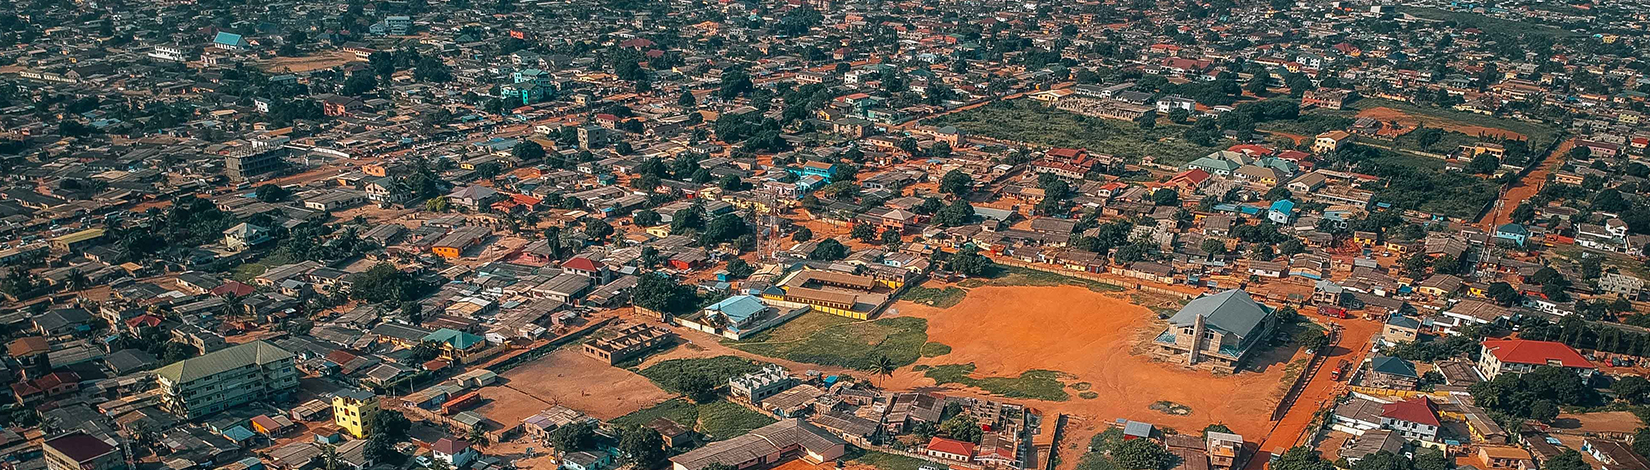 A ariel view of Ghana's capital city, Accra.